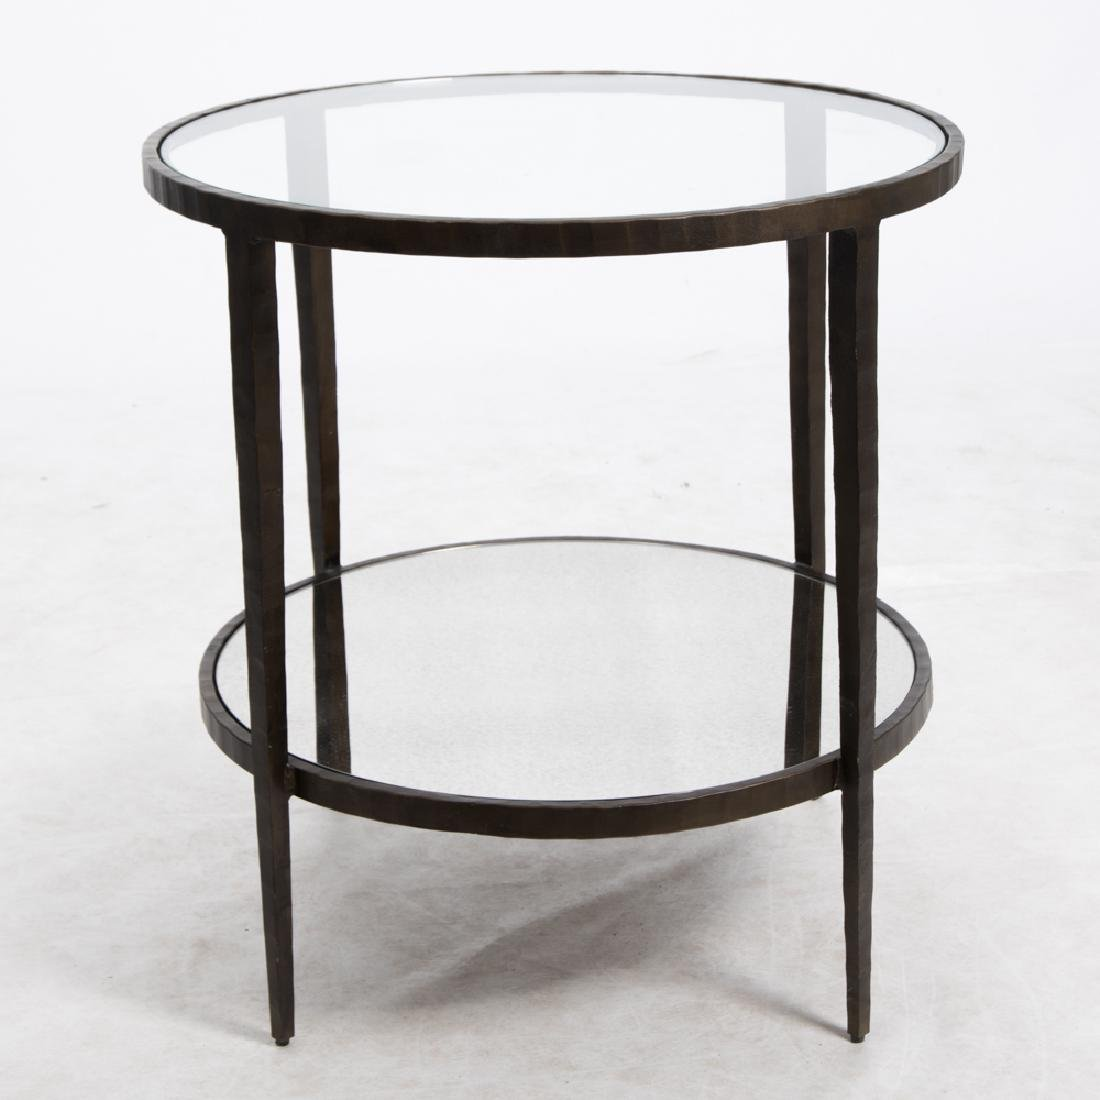 A Contemporary Metal and Glass Two Tier Circular Table